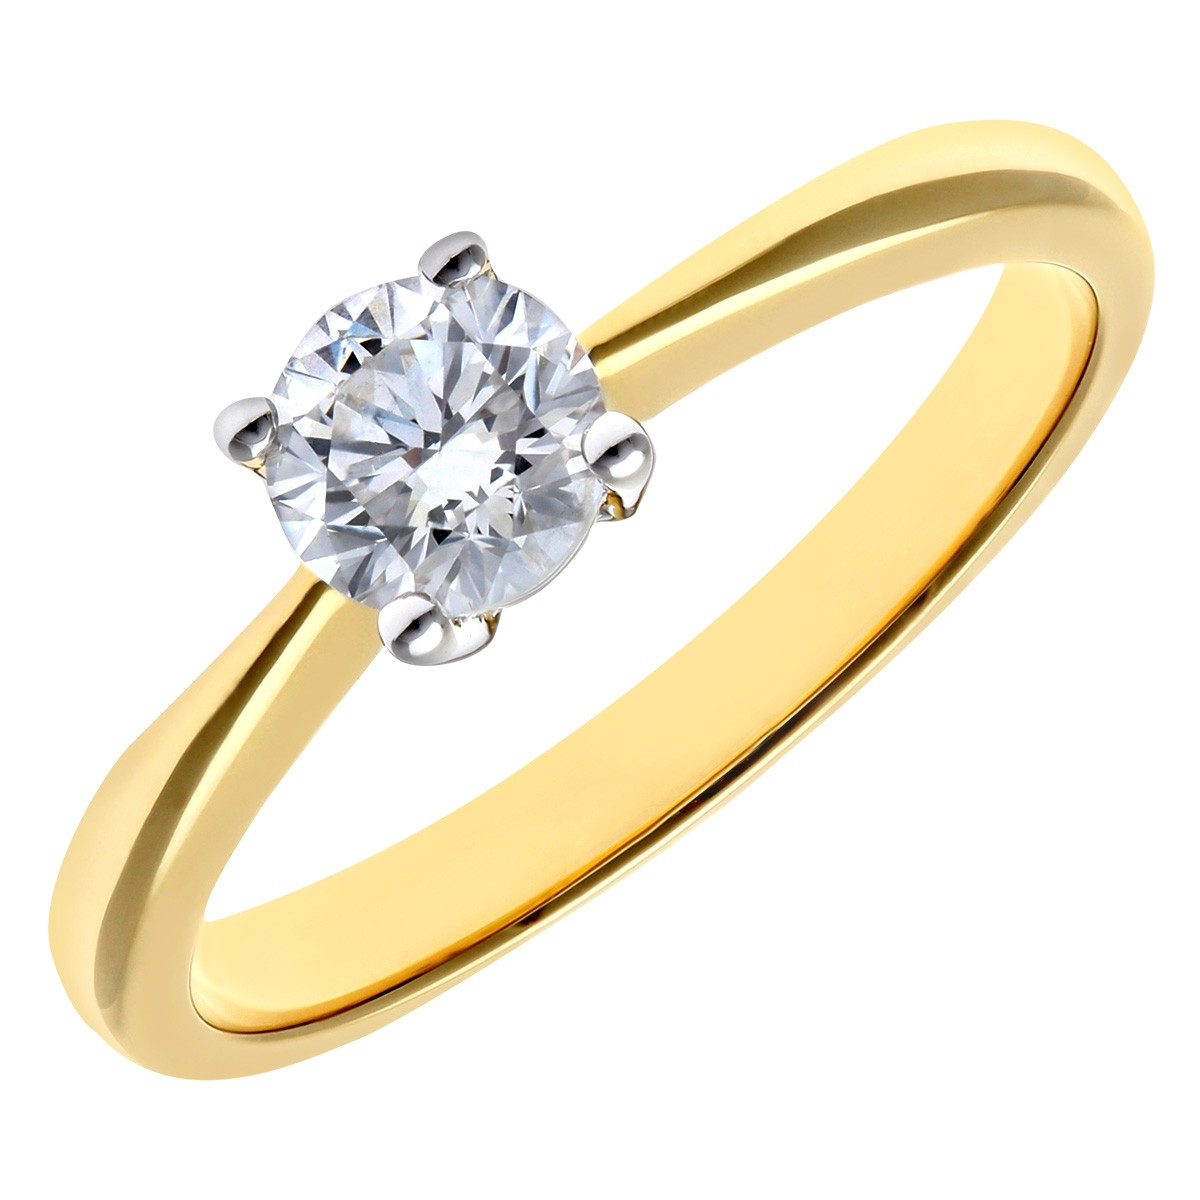 18CT YELLOW GOLD 0.50CT DIAMOND SOLITAIRE RING